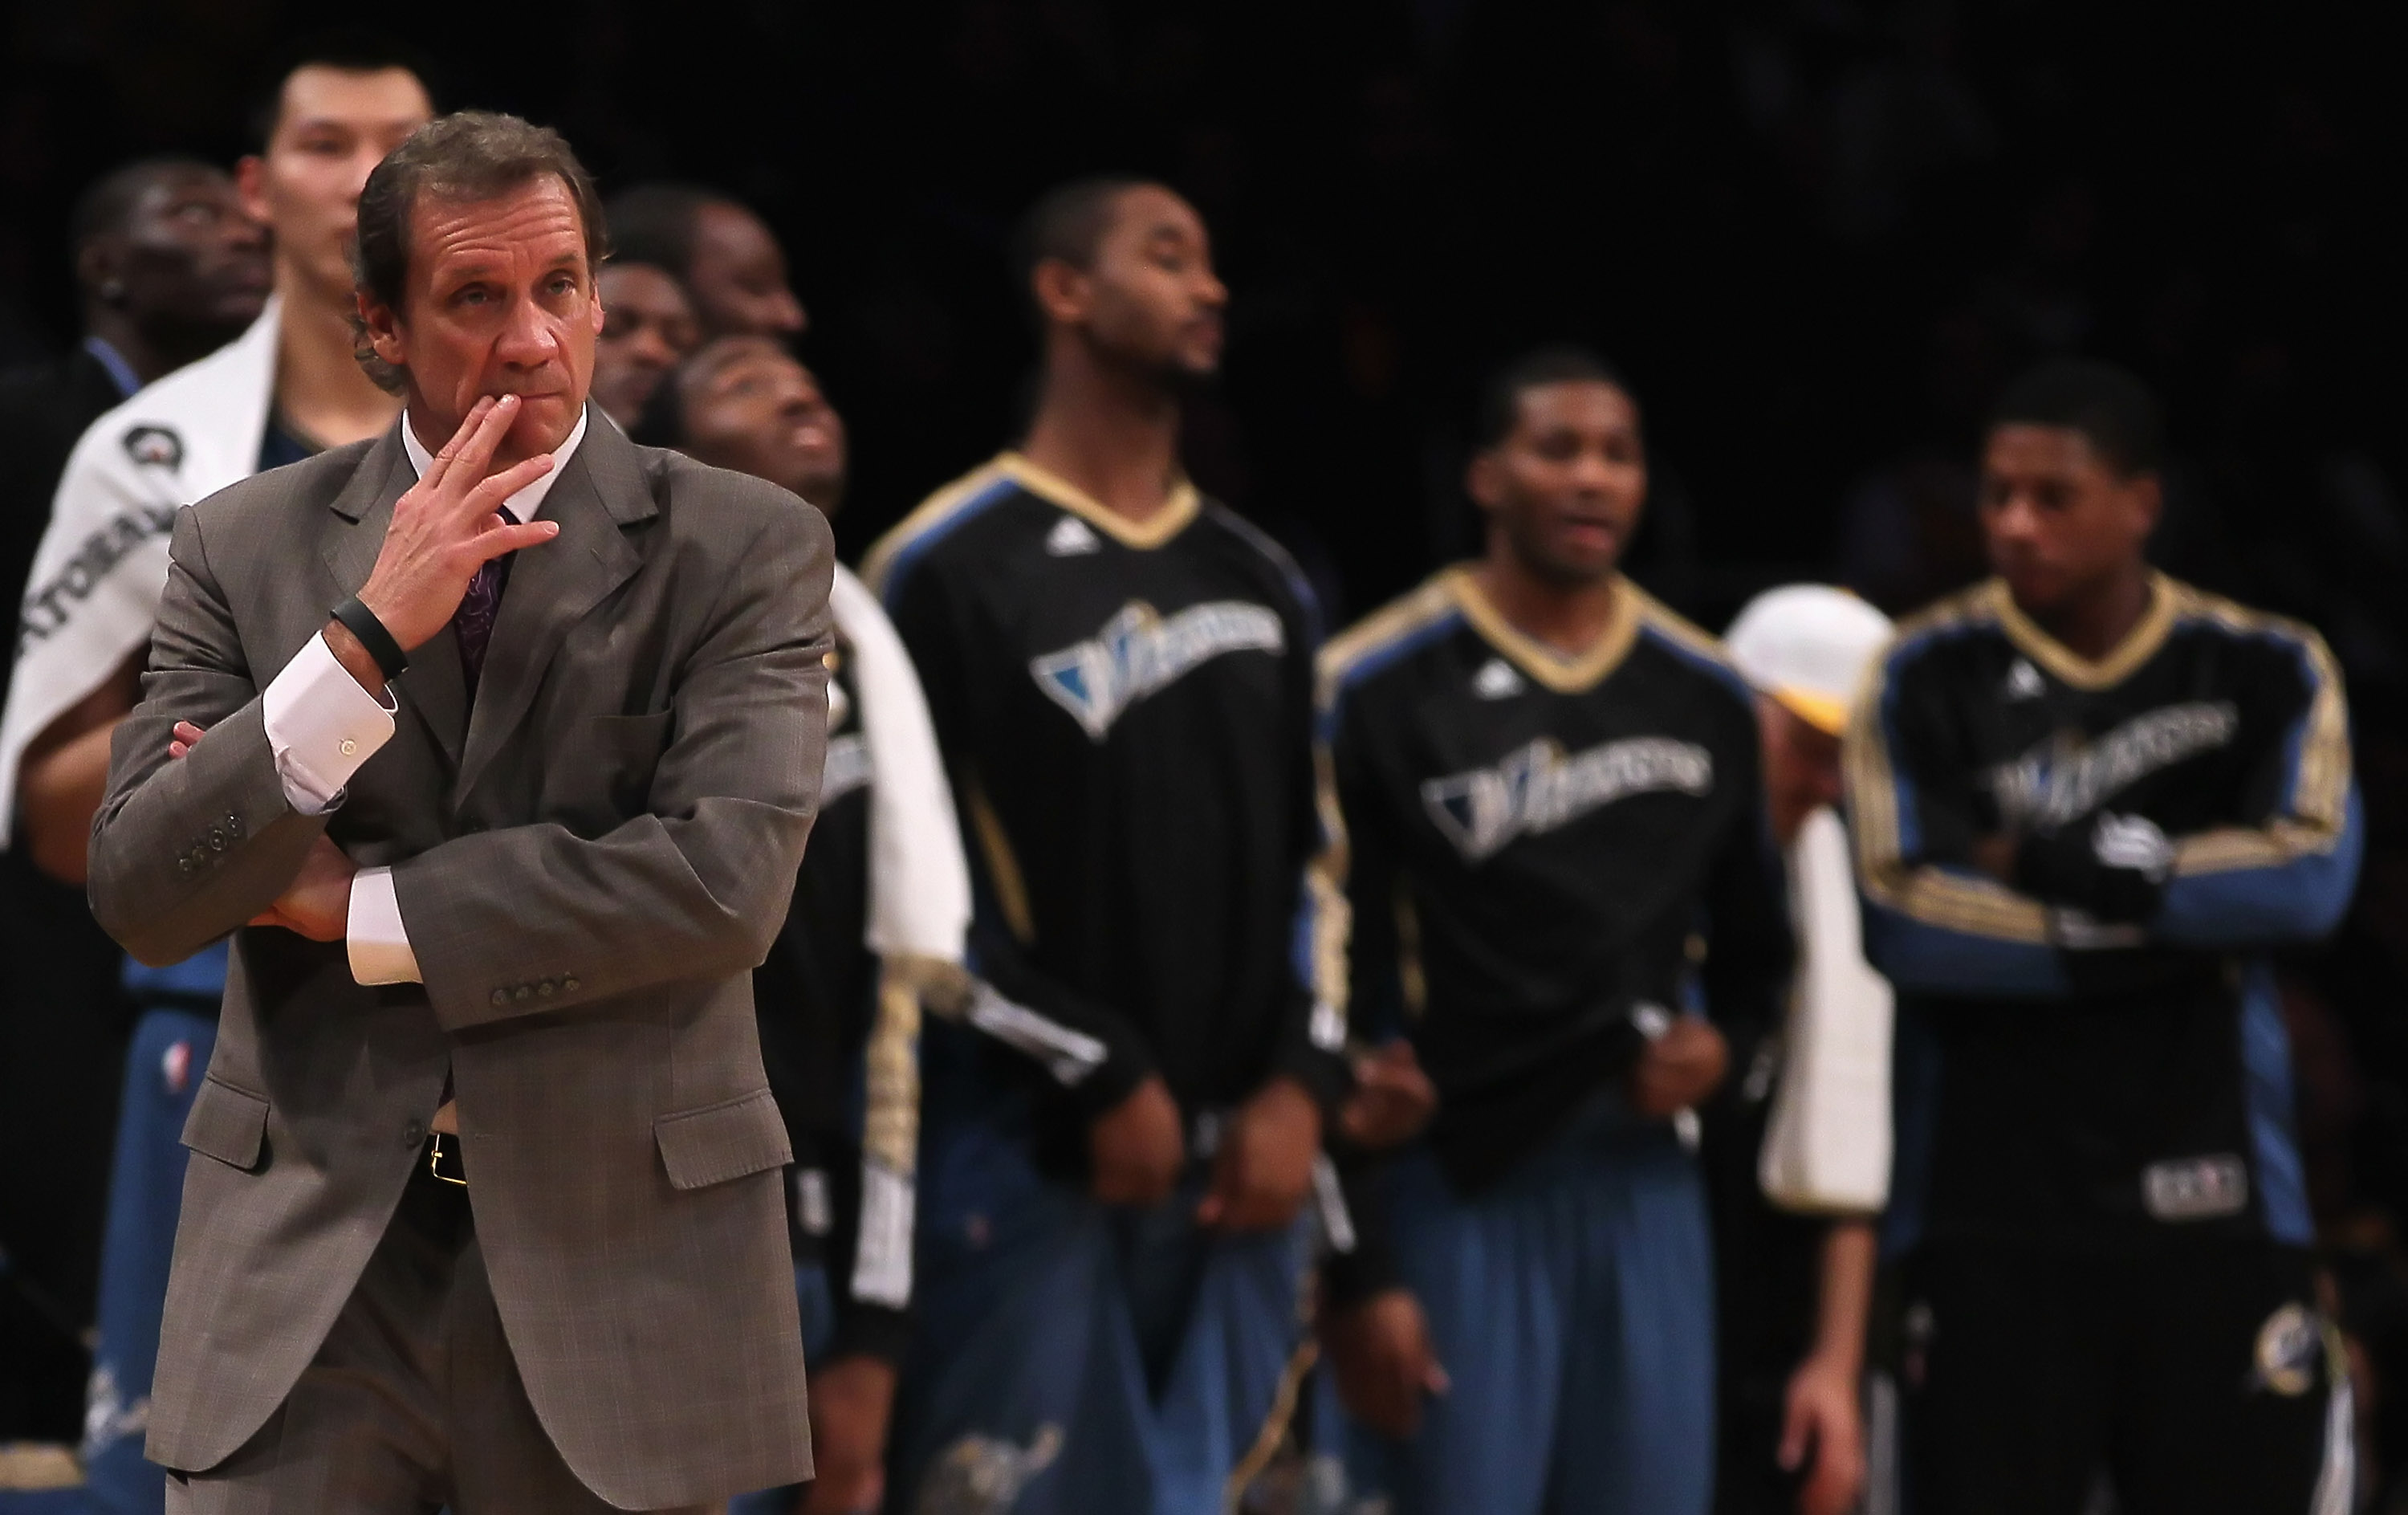 LOS ANGELES, CA - DECEMBER 07:  Washington Wizards head coach Flip Saunders looks on during the game against the Los Angeles Lakers at Staples Center on December 7, 2010 in Los Angeles, California. The Lakers defeated the Wizards 115-108. NOTE TO USER: Us